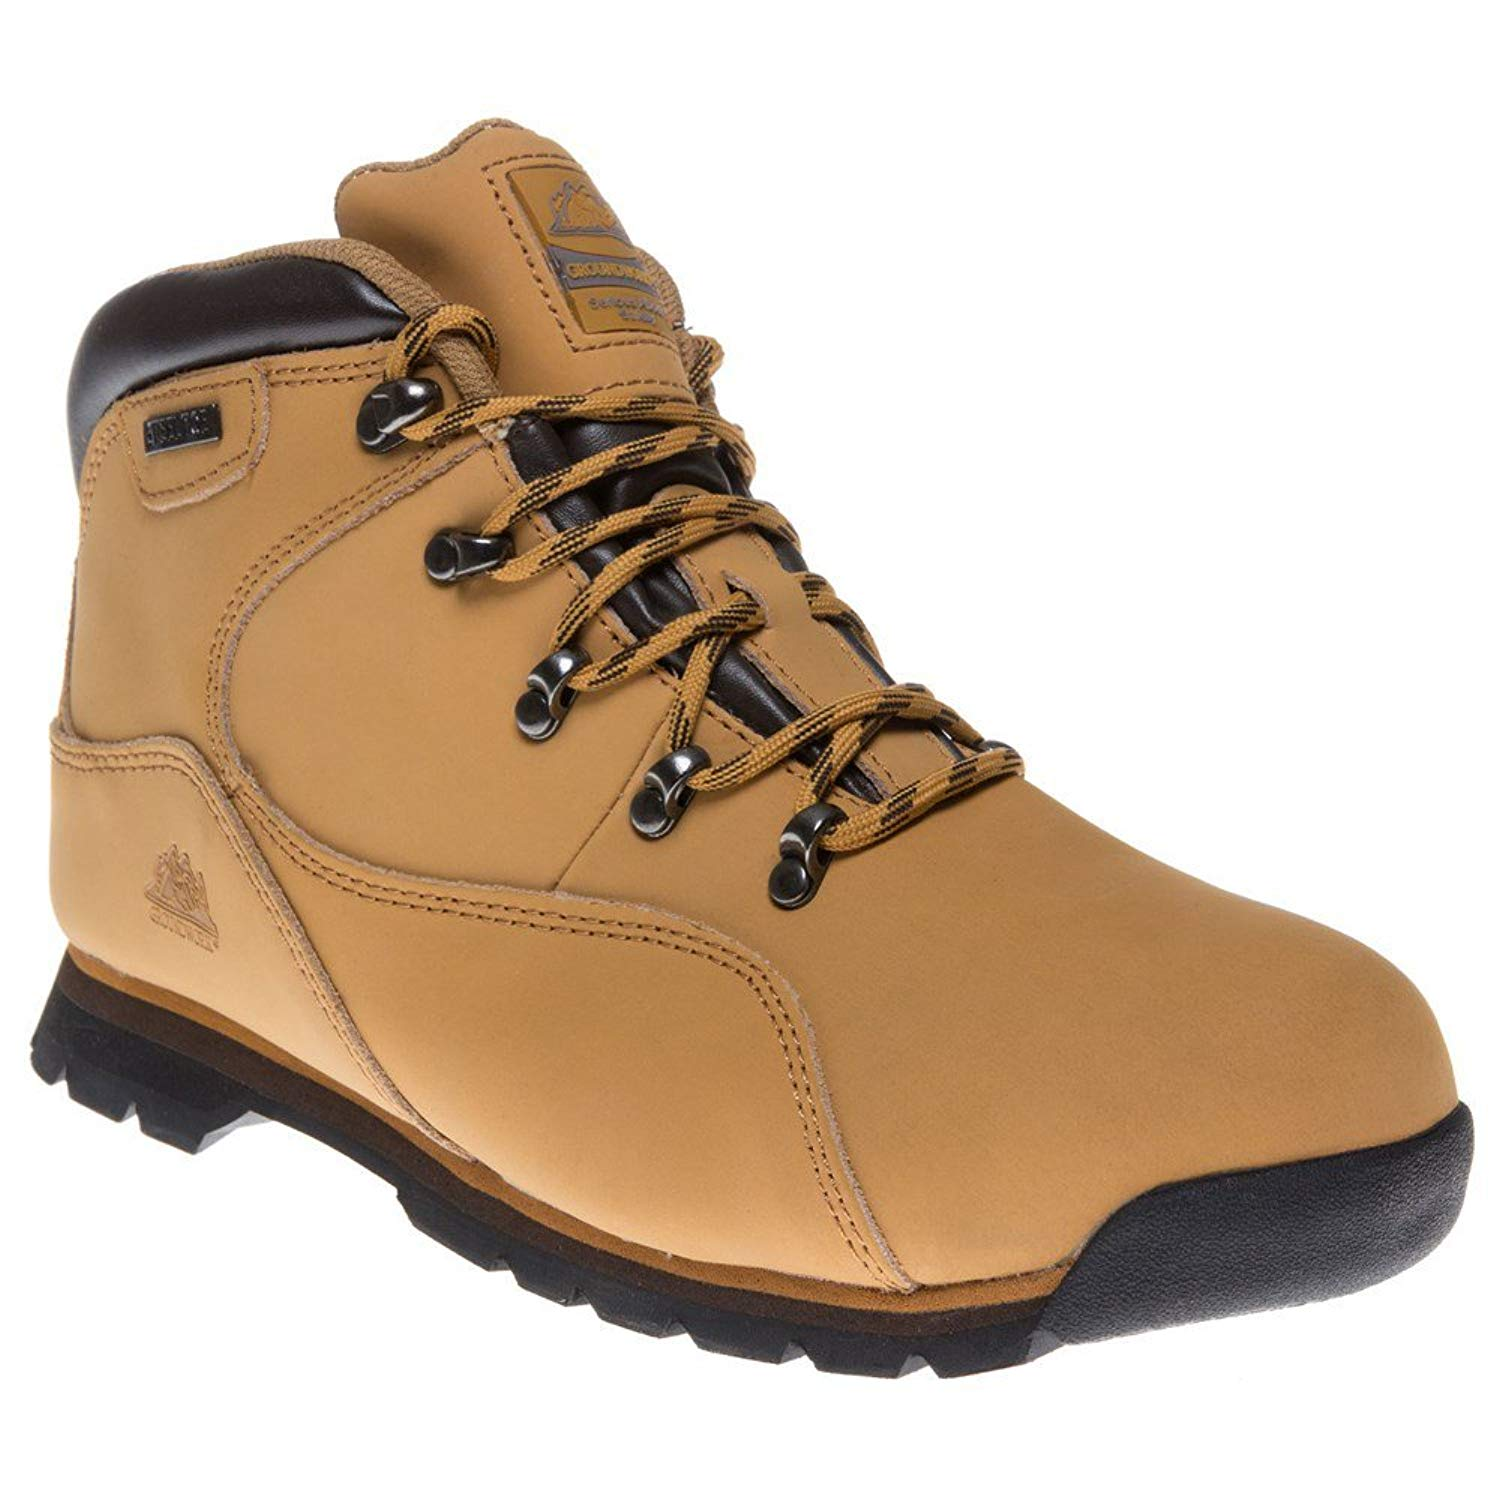 5eebbca2c80 Cheap Groundwork Boots, find Groundwork Boots deals on line at ...